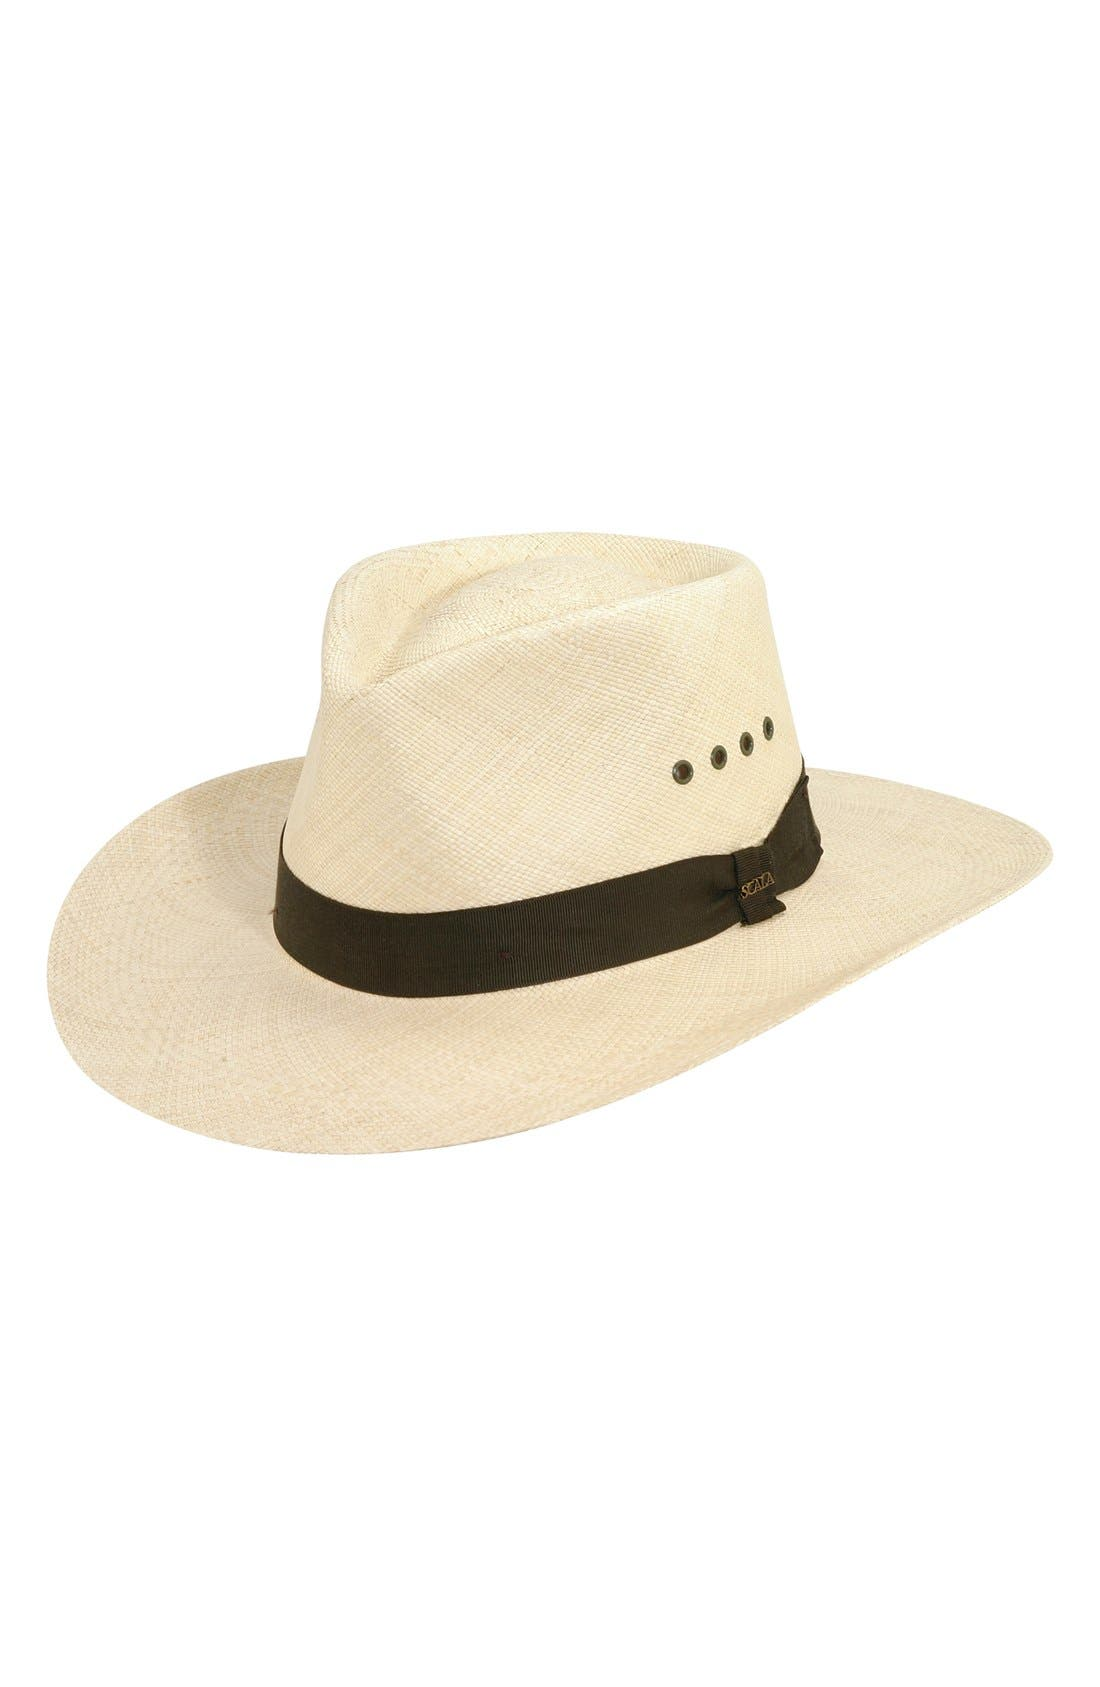 SCALA Straw Outback Hat